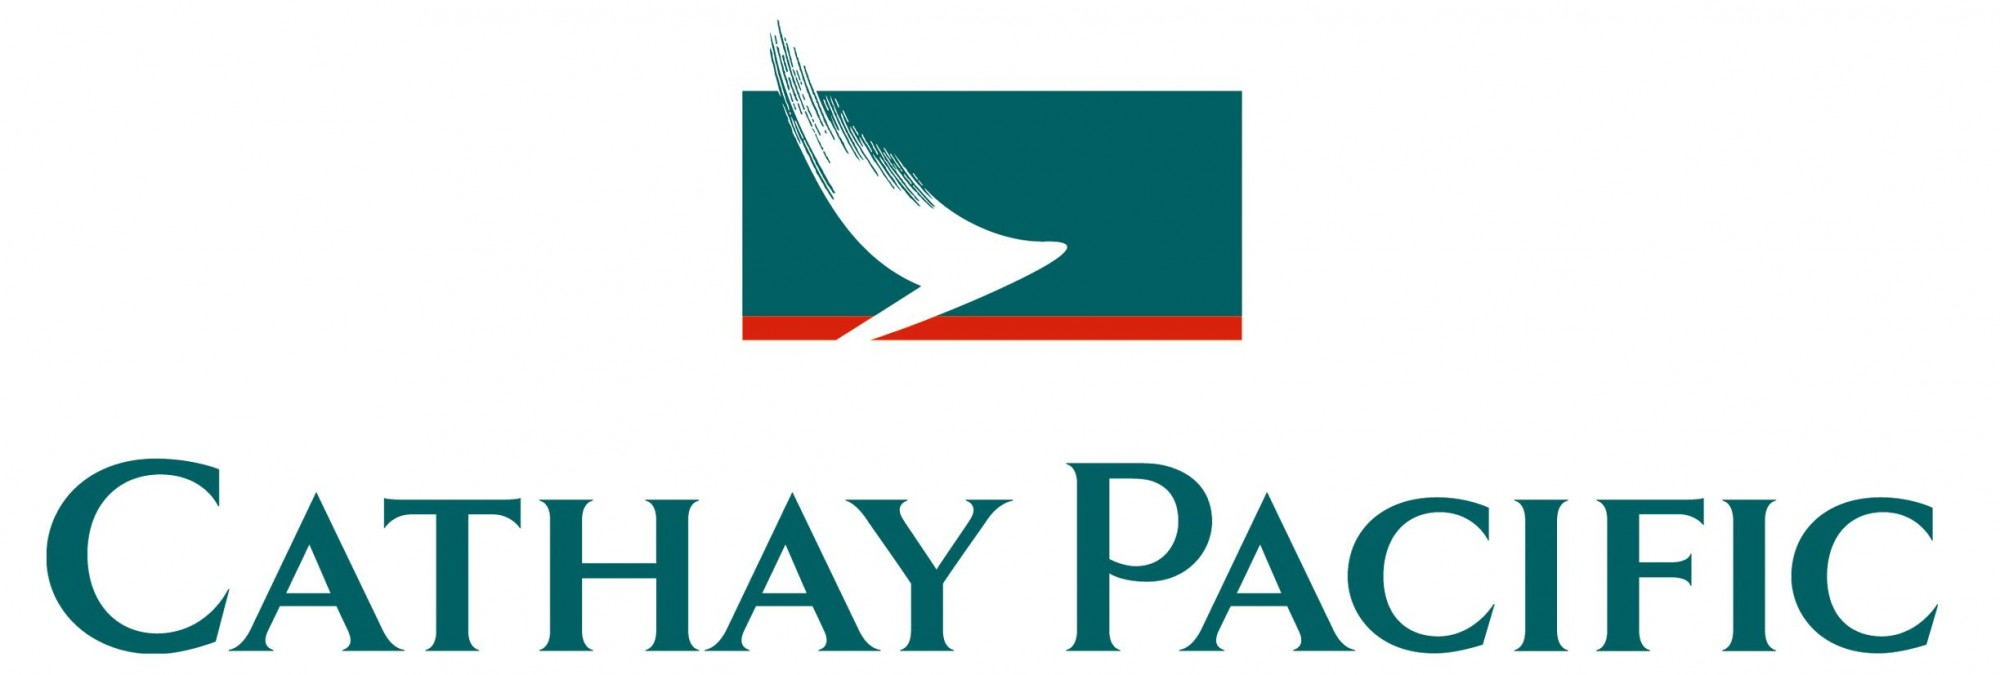 Cathay Pacific Airline.jpg